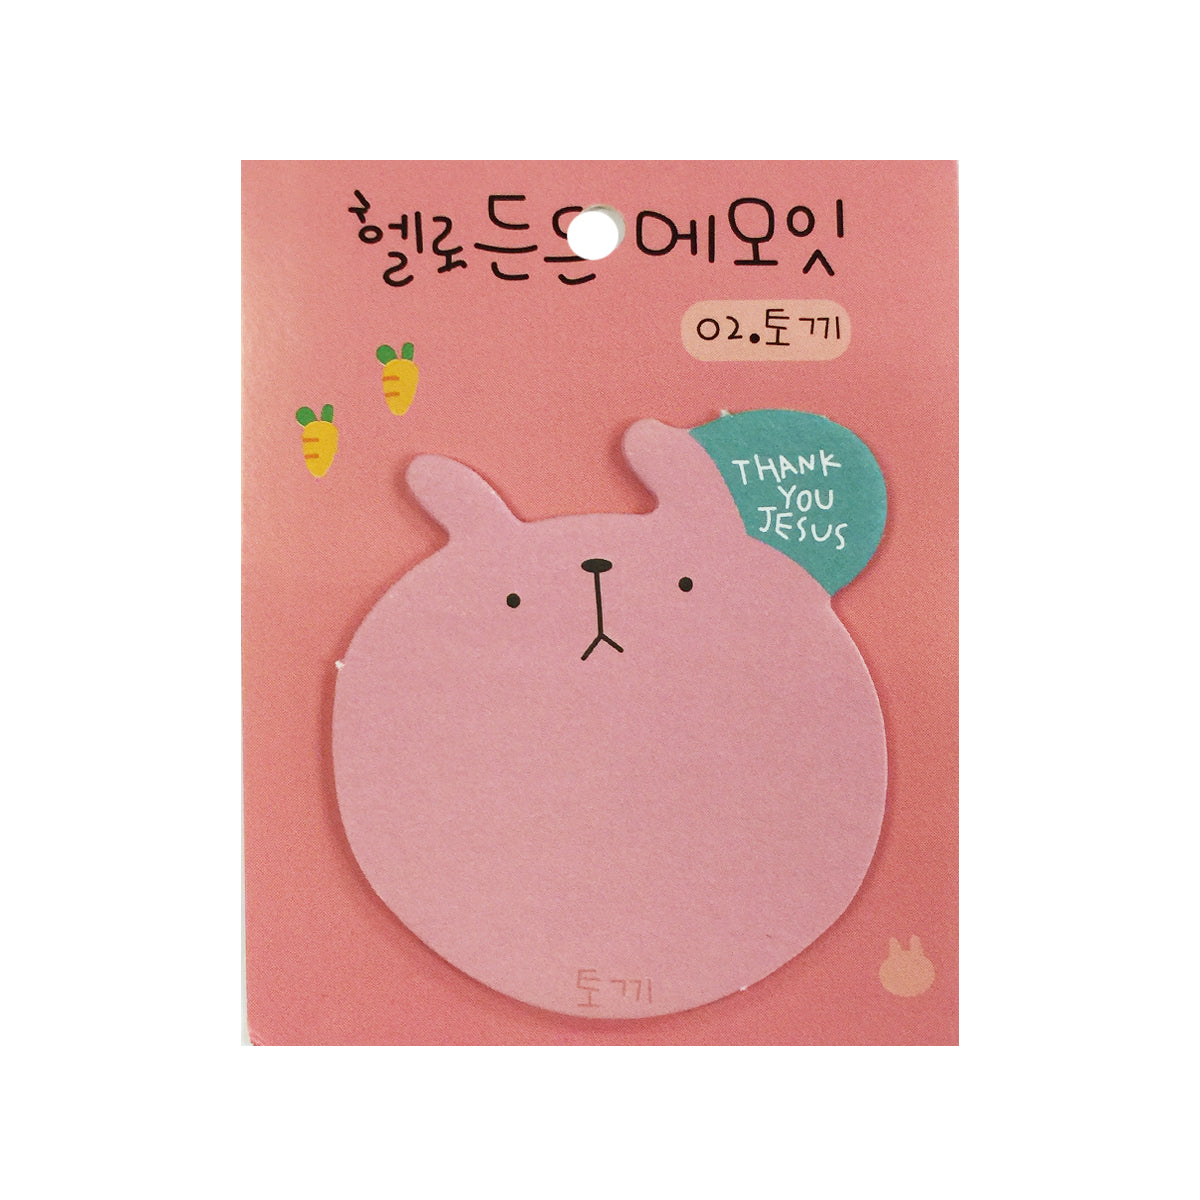 Wrapables Sentimental Buddies Memo Sticky Notes (Set of 4)